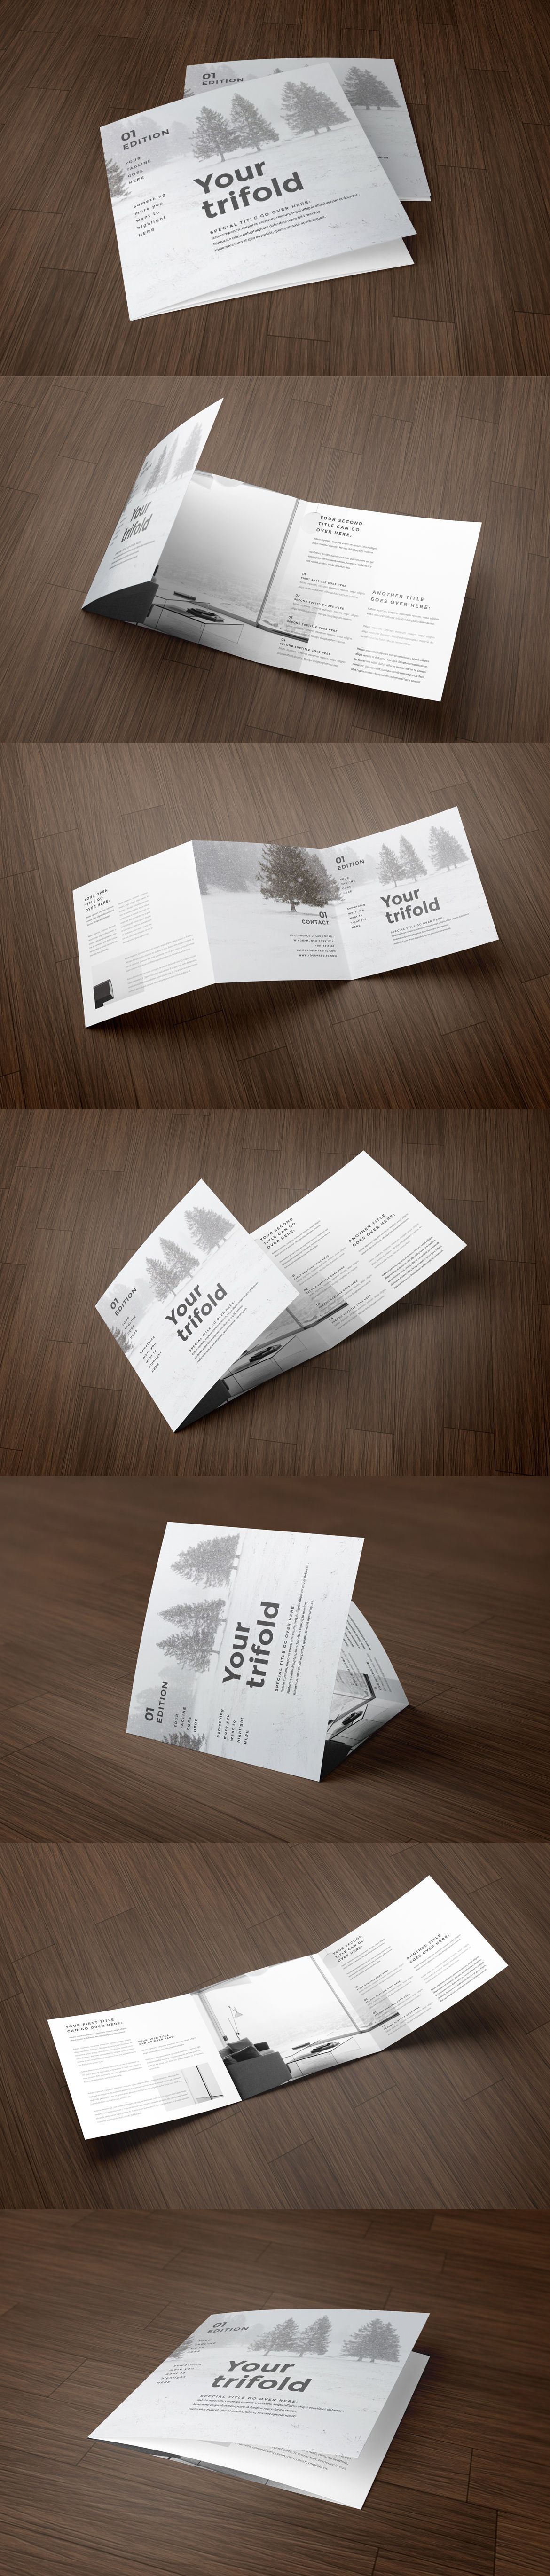 Square Simple Minimal Trifold Brochure Template InDesign INDD ...